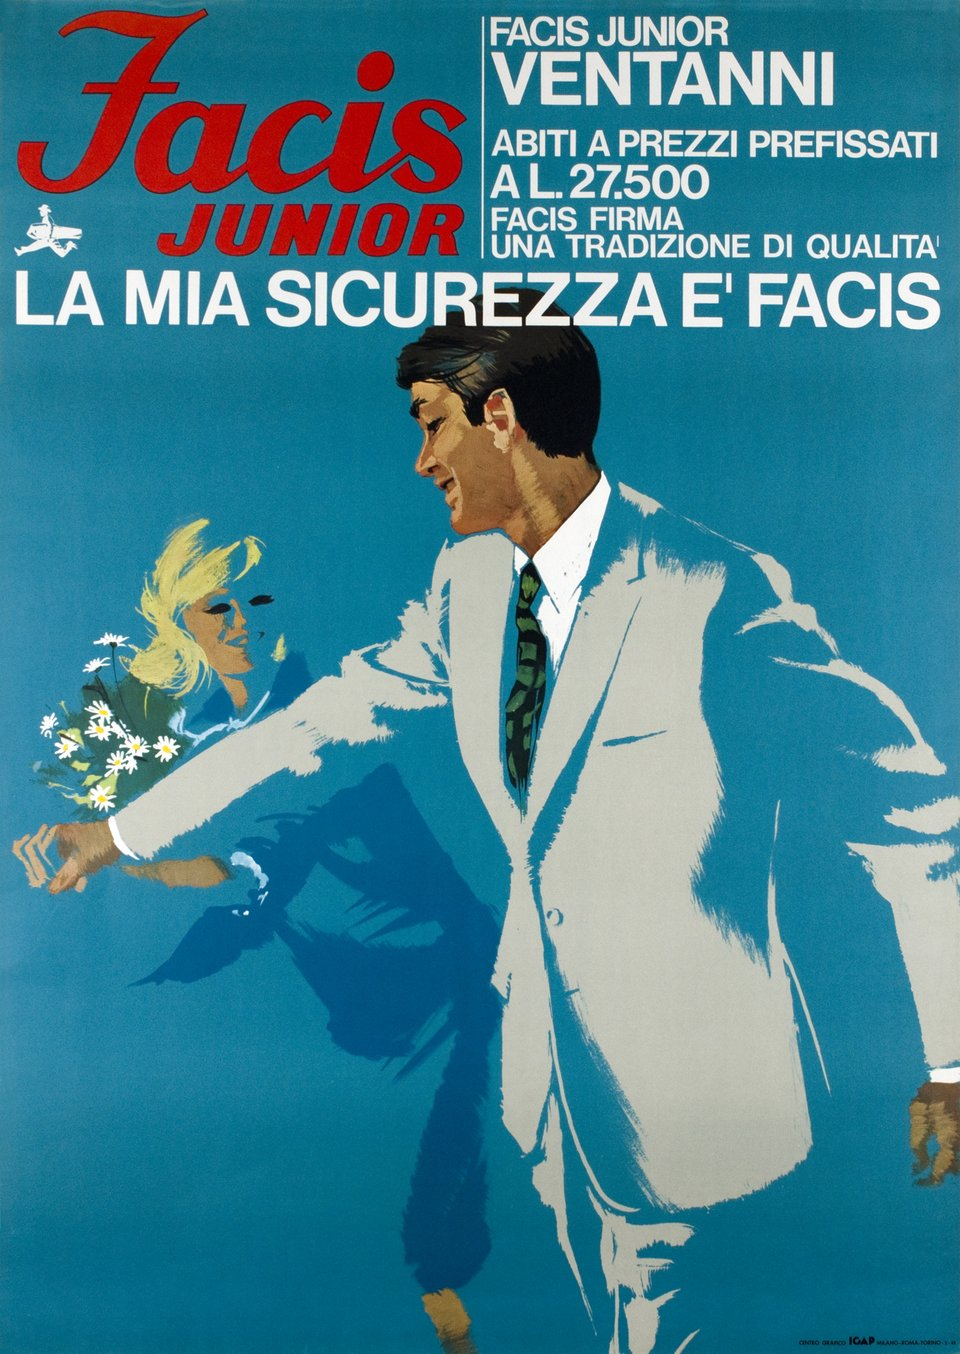 Facis Junior, La mia sicurezza e Facis – Vintage poster – Ferenc PINTER – 1965